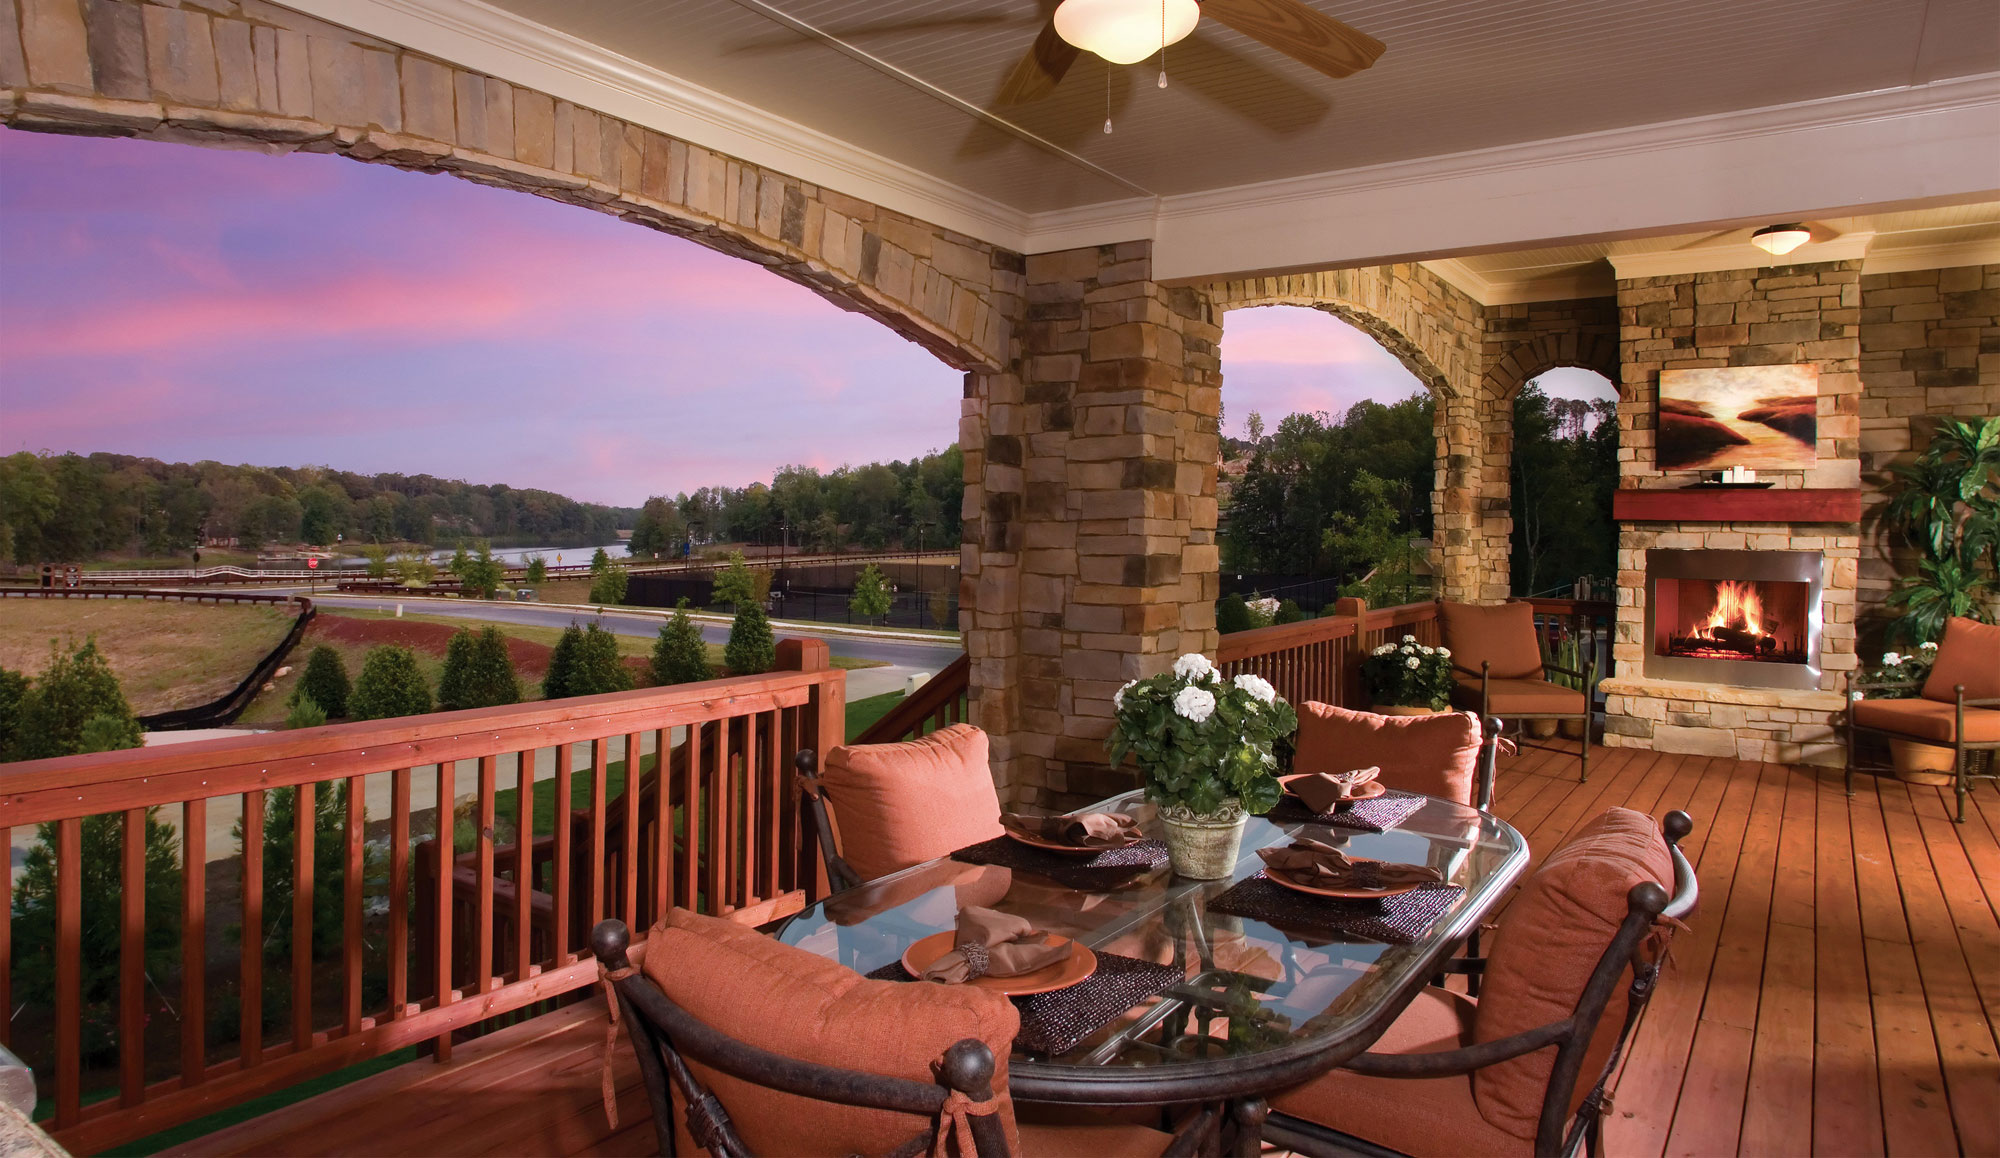 Show off your outdoor space to its fullest potential